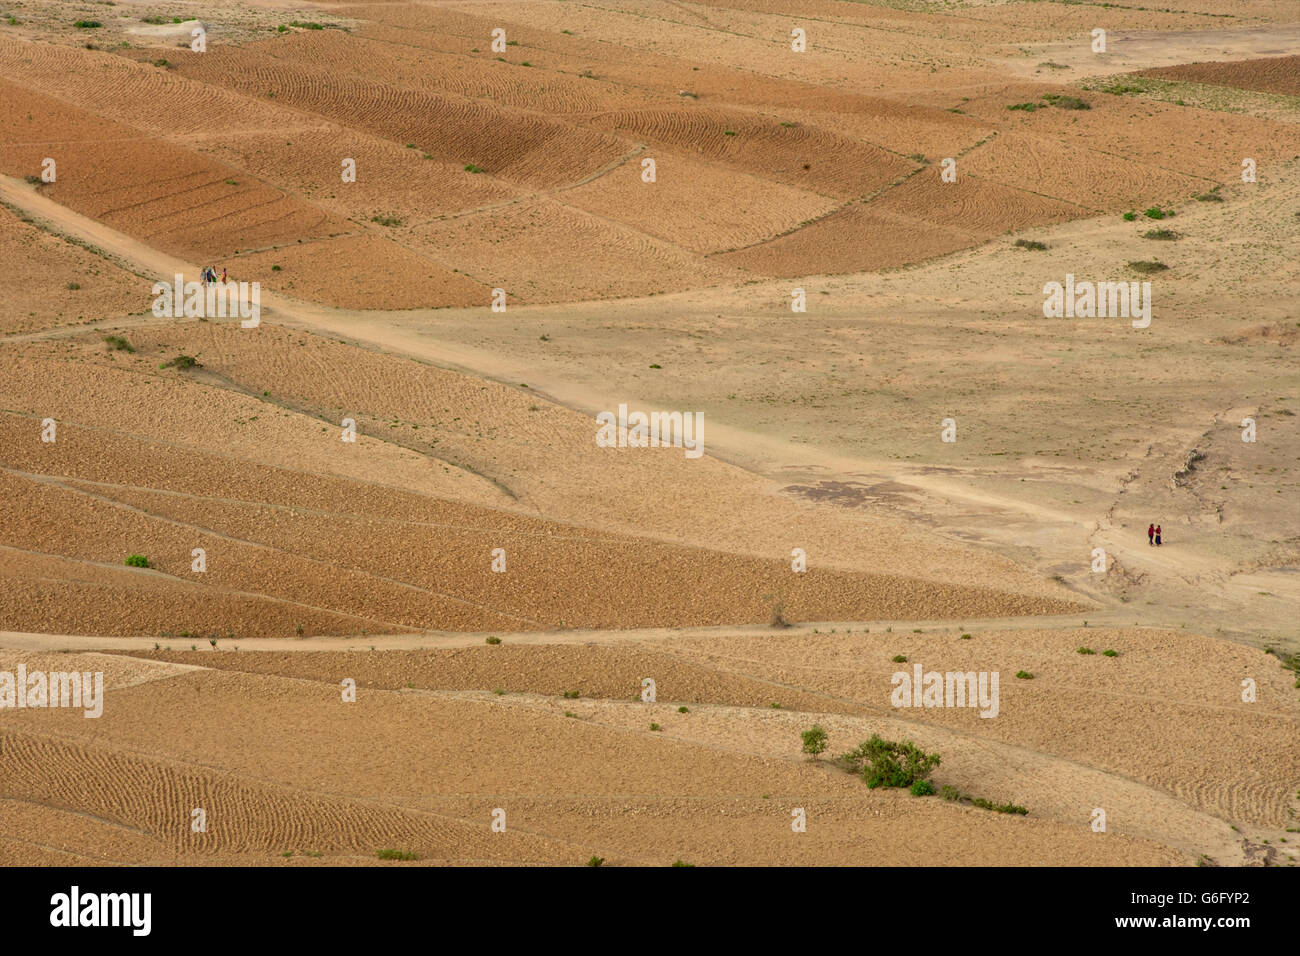 Agricultural fields, Eastern Tigray, near Gheralta, Ethiopia - Stock Image